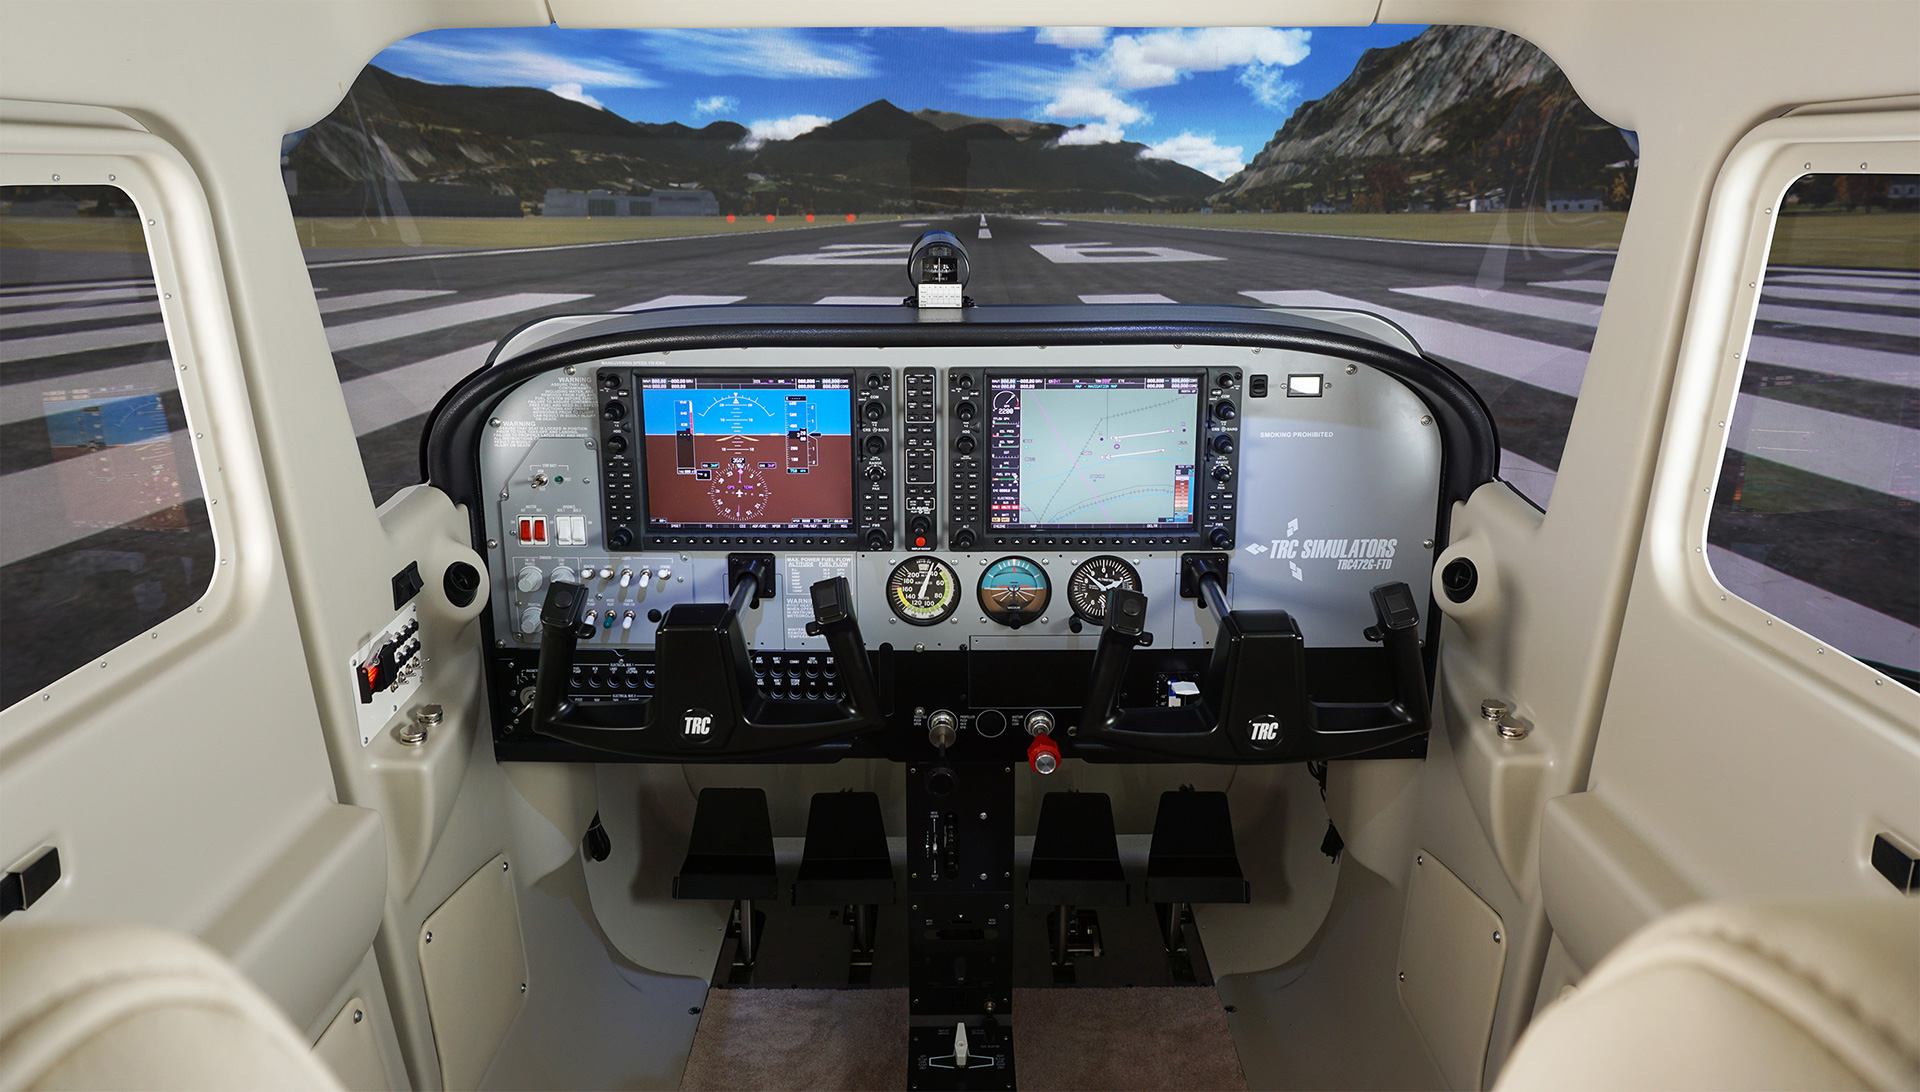 TRC Simulators – TRC Simulators, extremely realistic flight